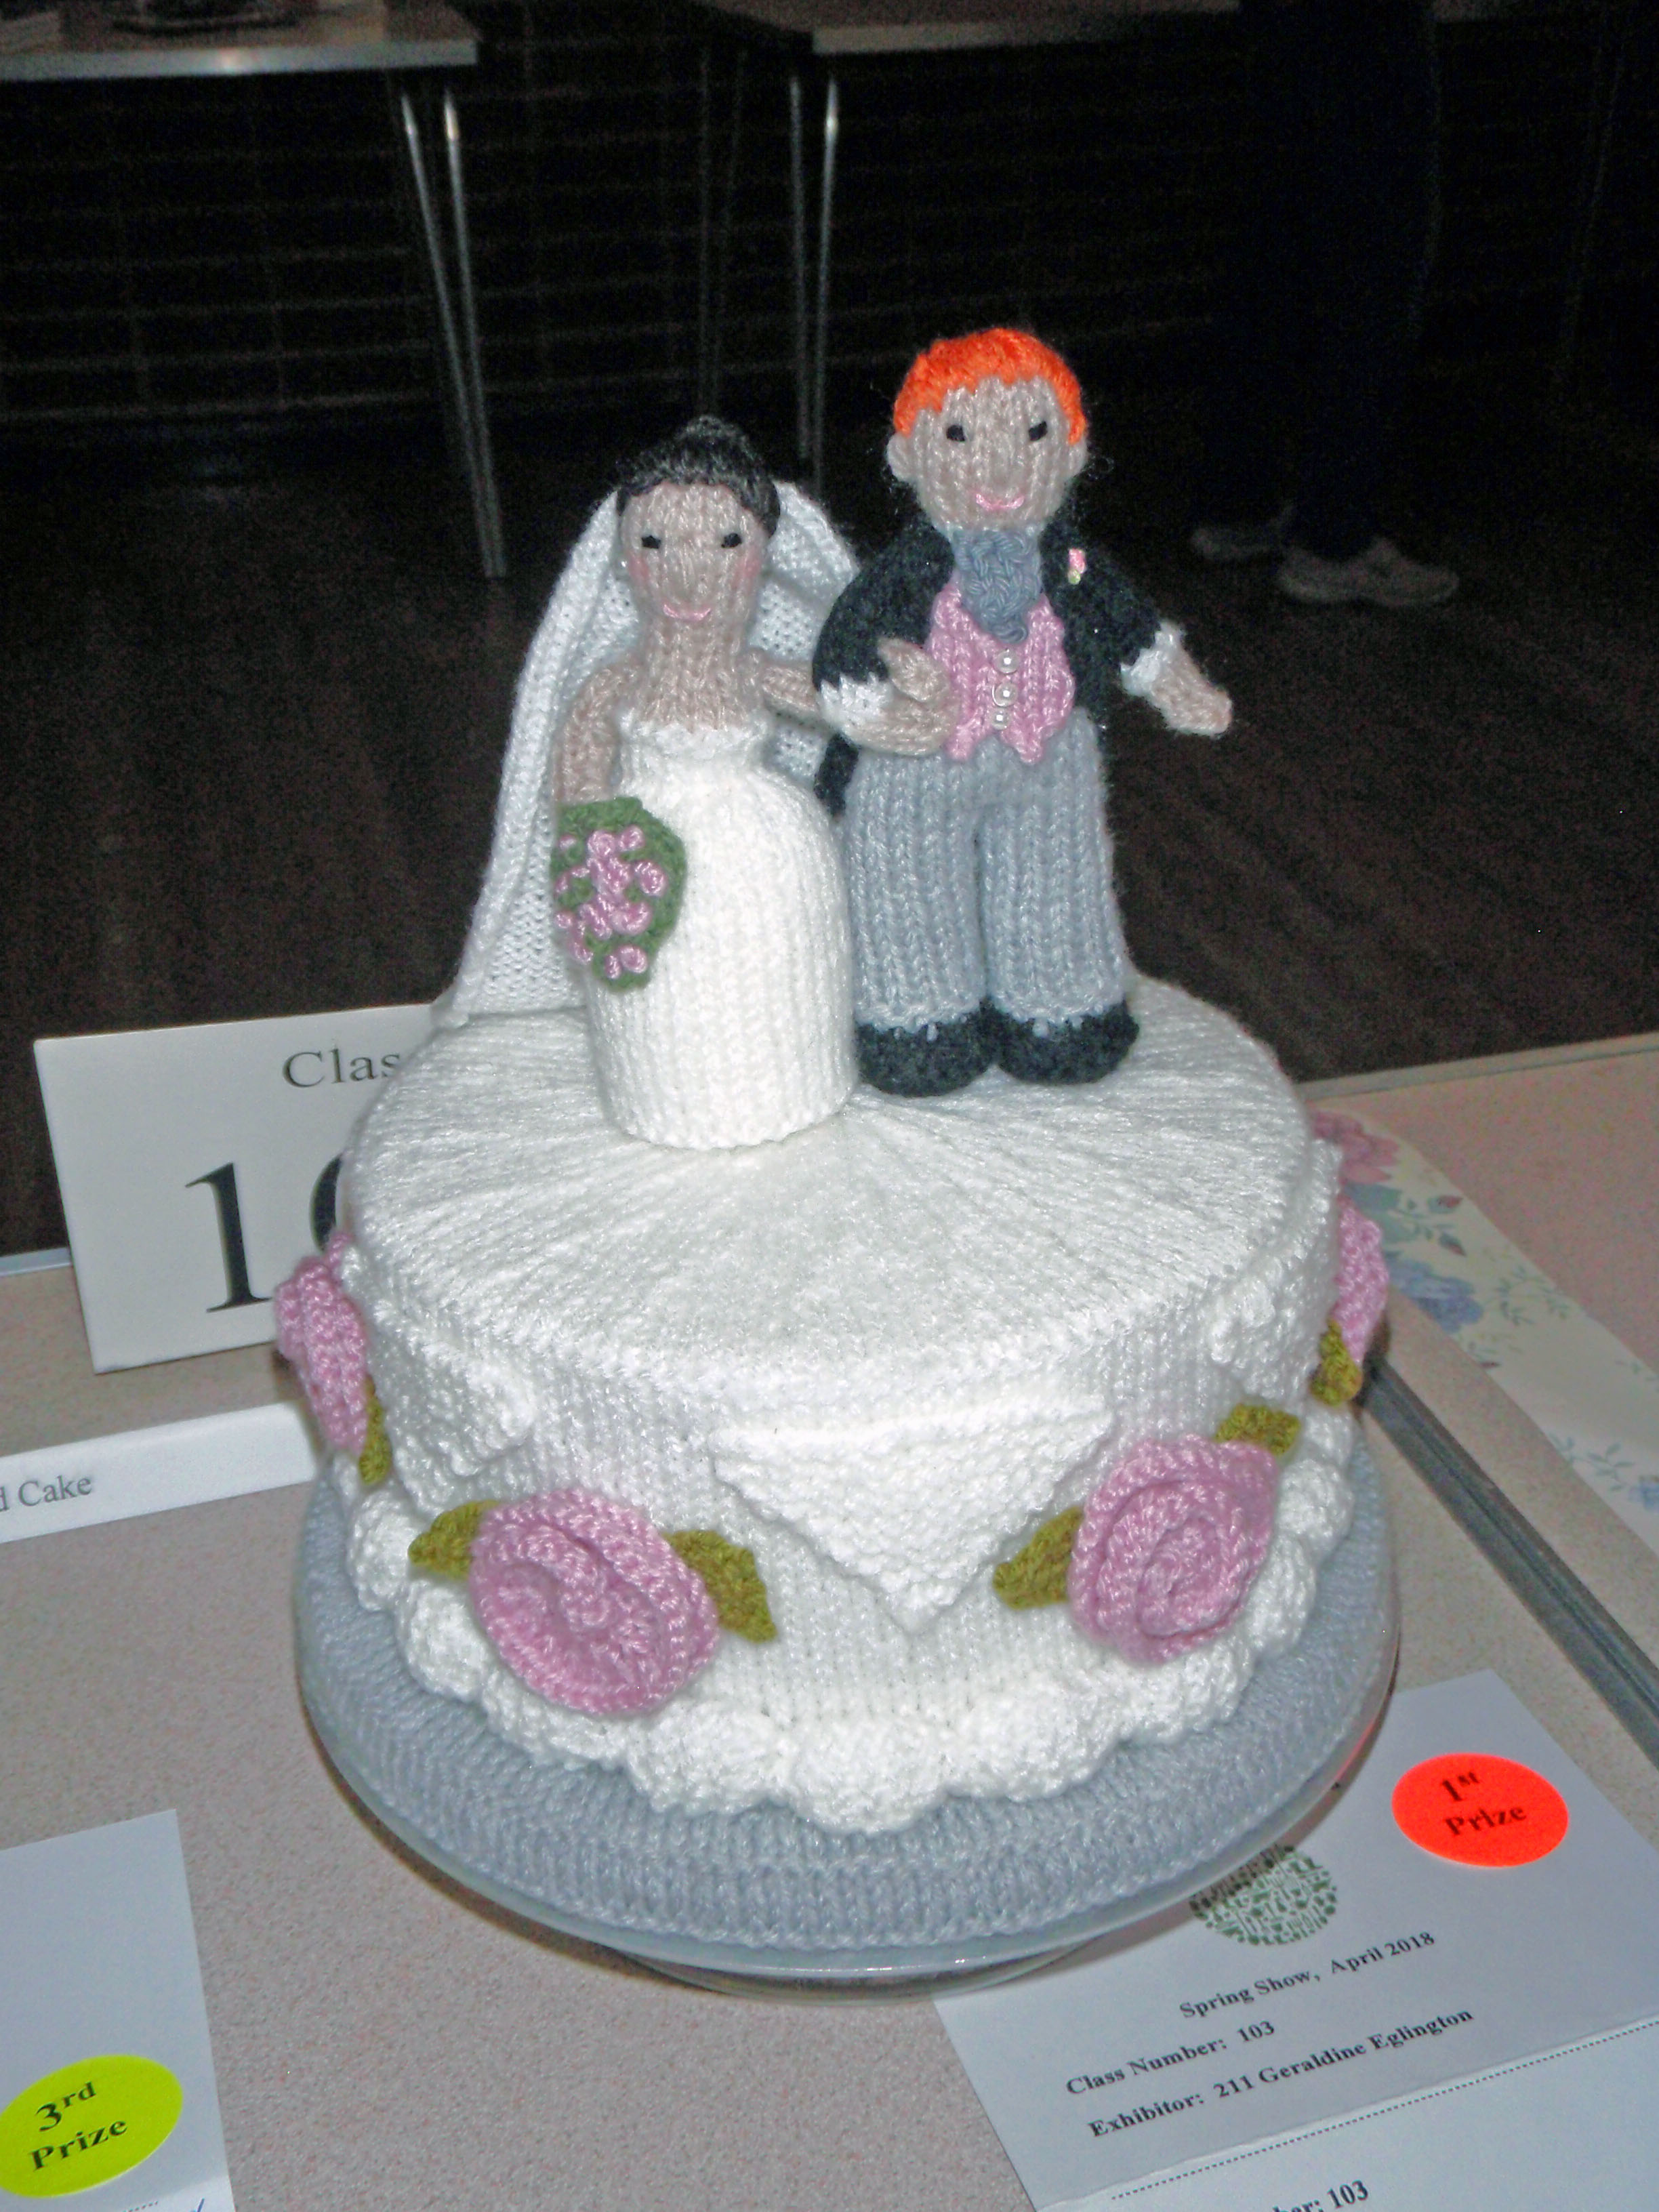 2018 Knitted Cake Spring Show